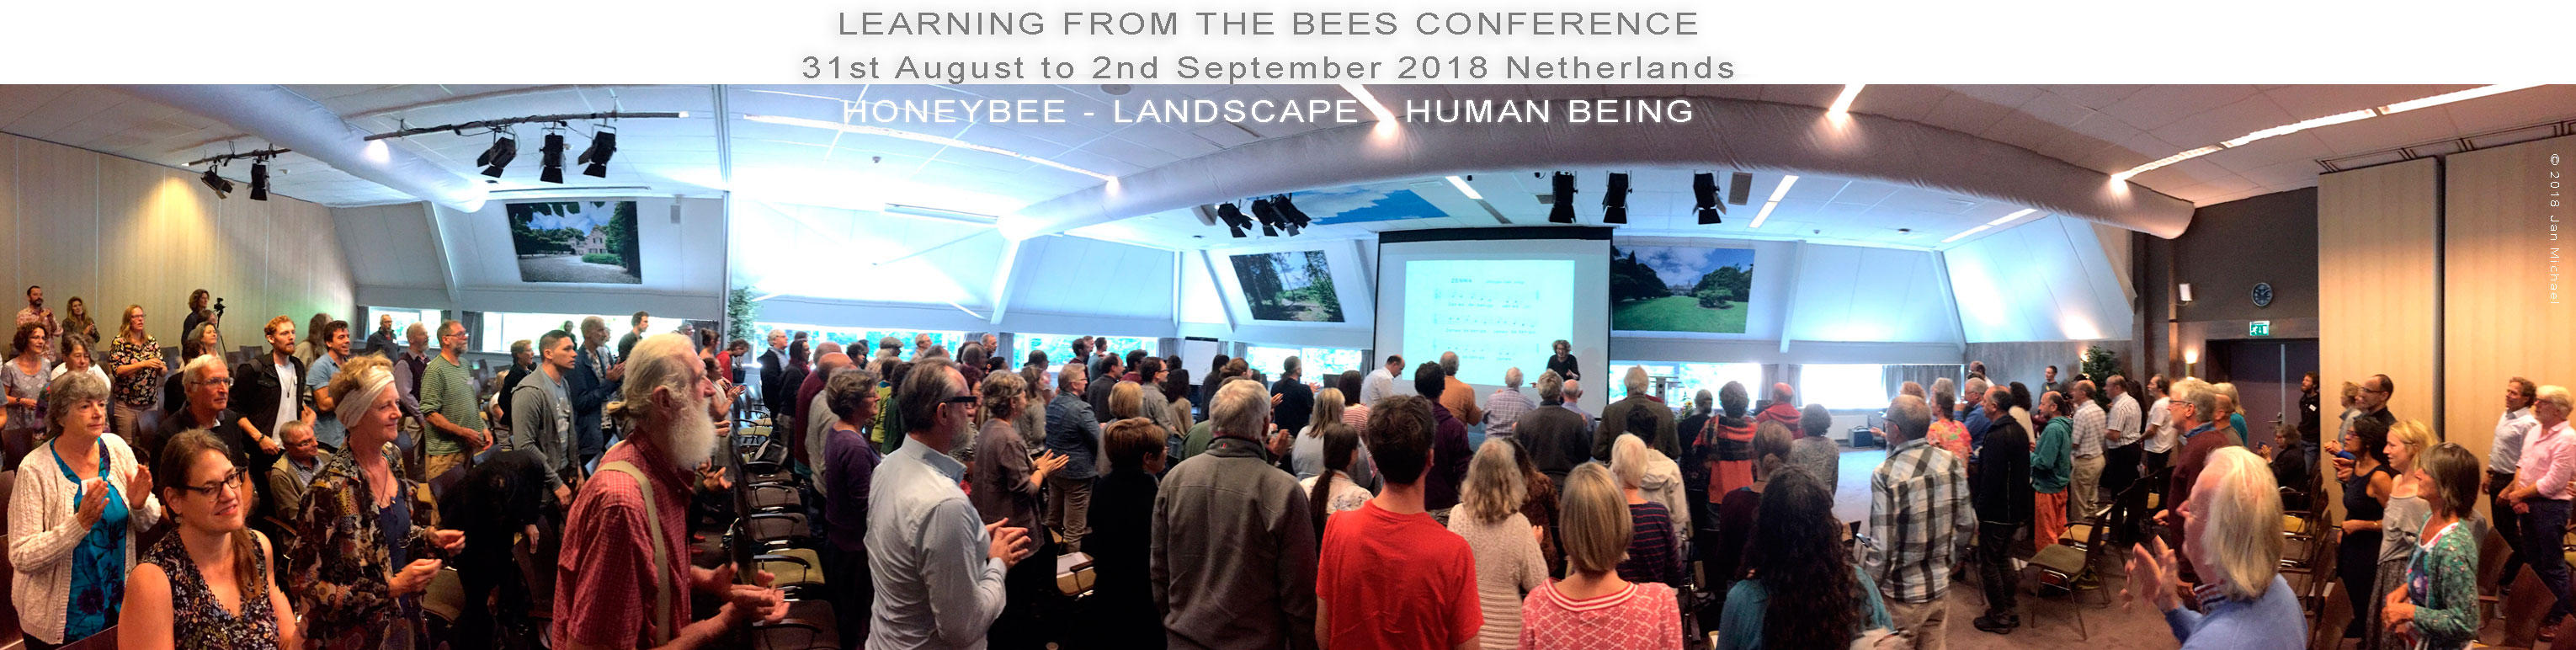 Panorama Congrés learning from the bees